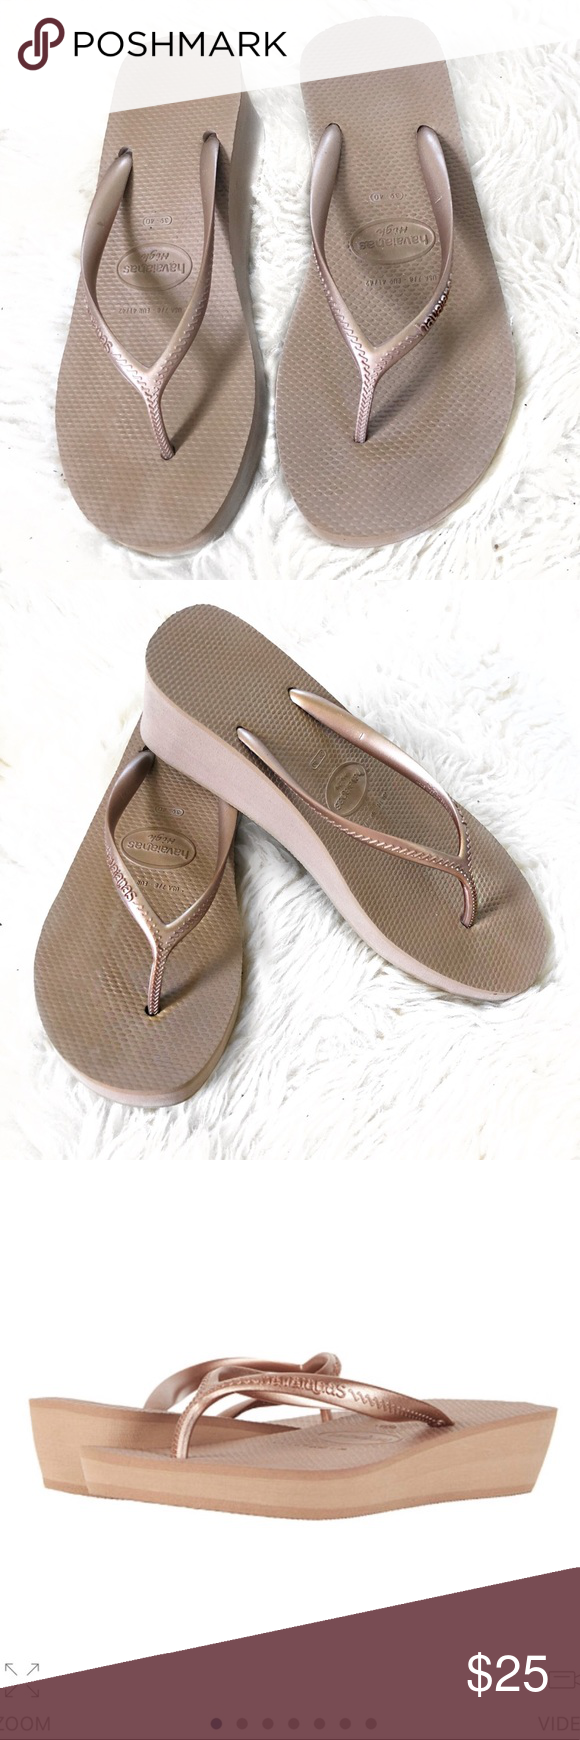 be563ab559d1 HAVAIANAS High Thong Sandals in Bronze Size 7   8 Havaianas High Thong  Sandals No visible